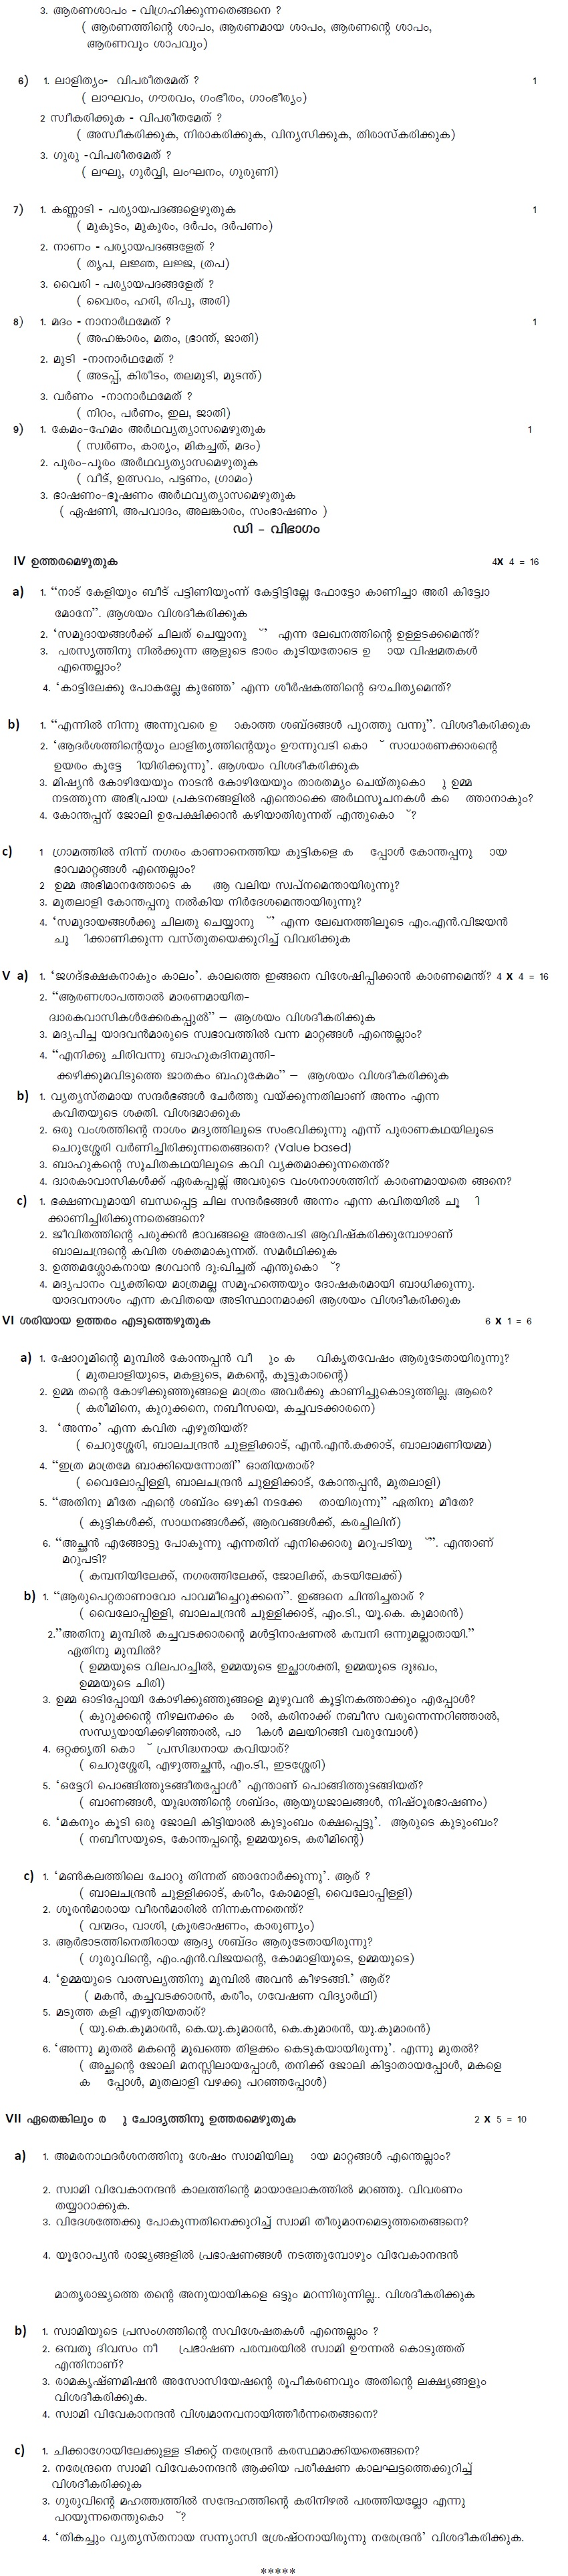 CBSE Class 9 Question Bank - Malayam